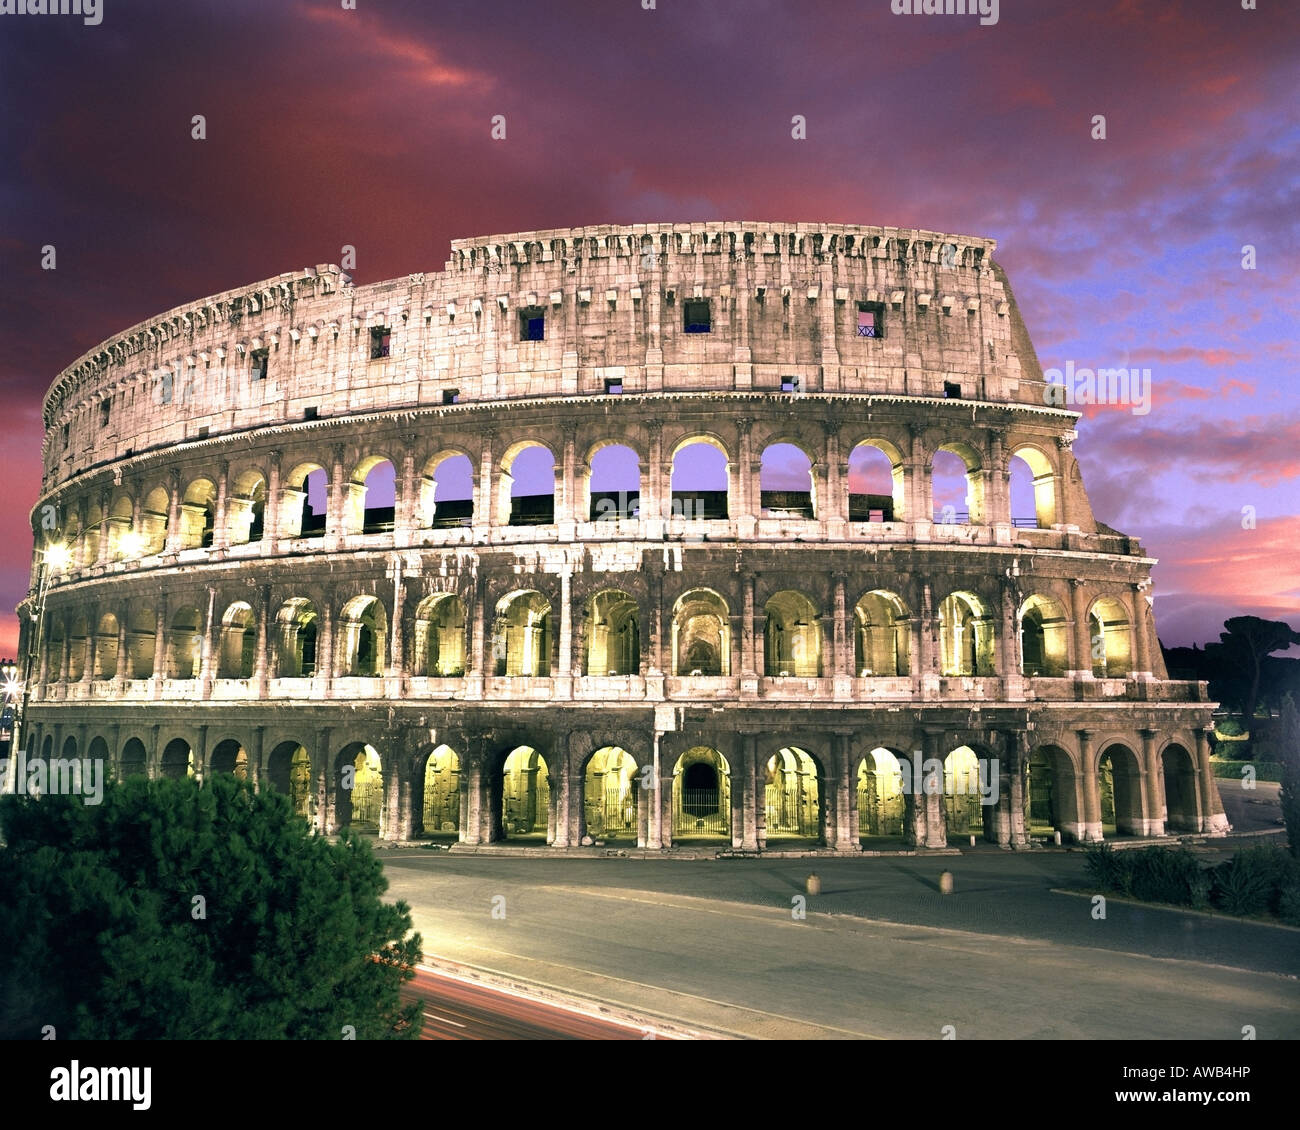 IT - ROME: The Colosseum by night - Stock Image